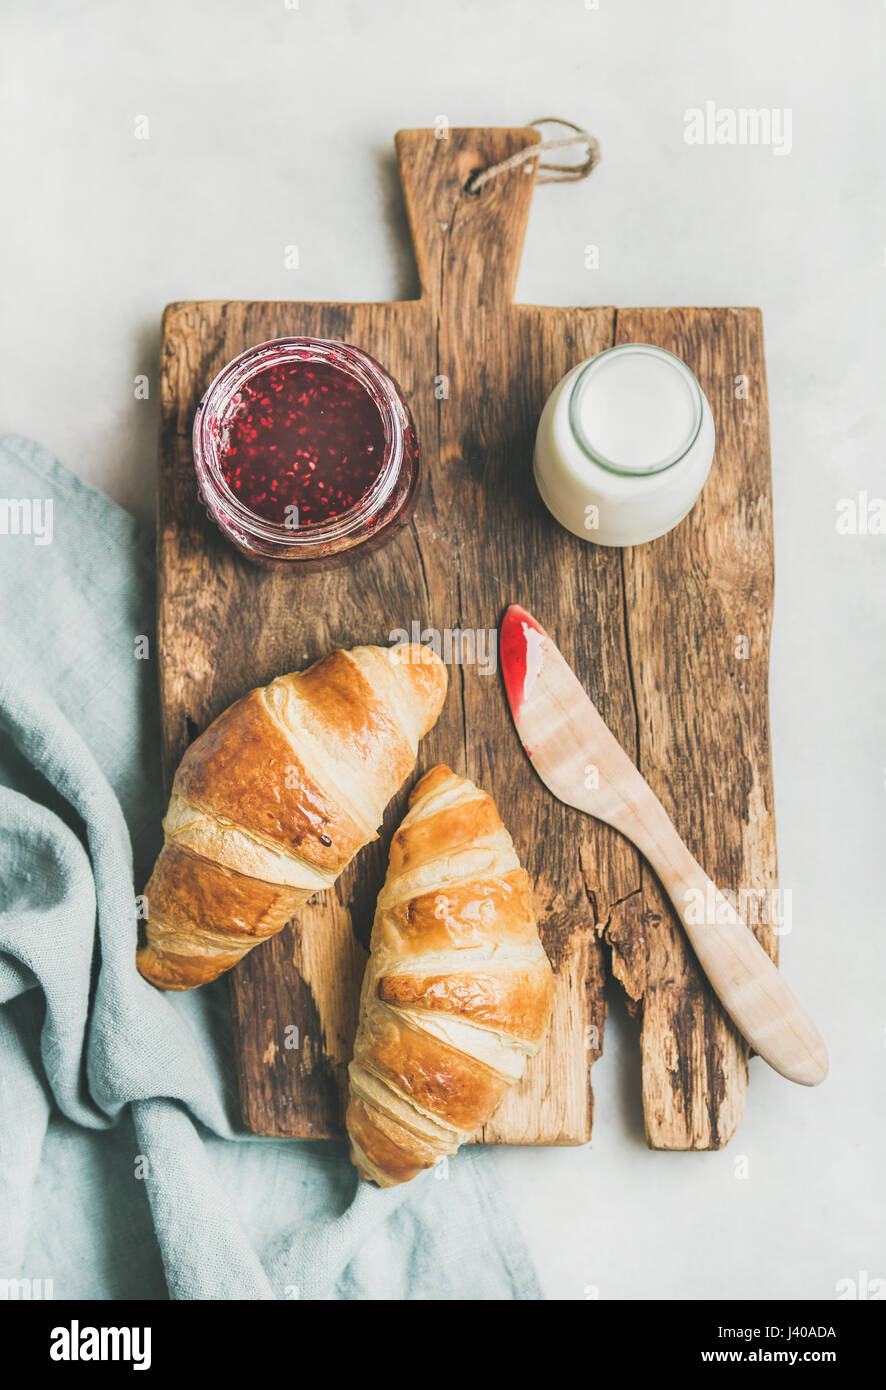 Freshly baked croissants with raspberry jam and milk in bottle - Stock Image